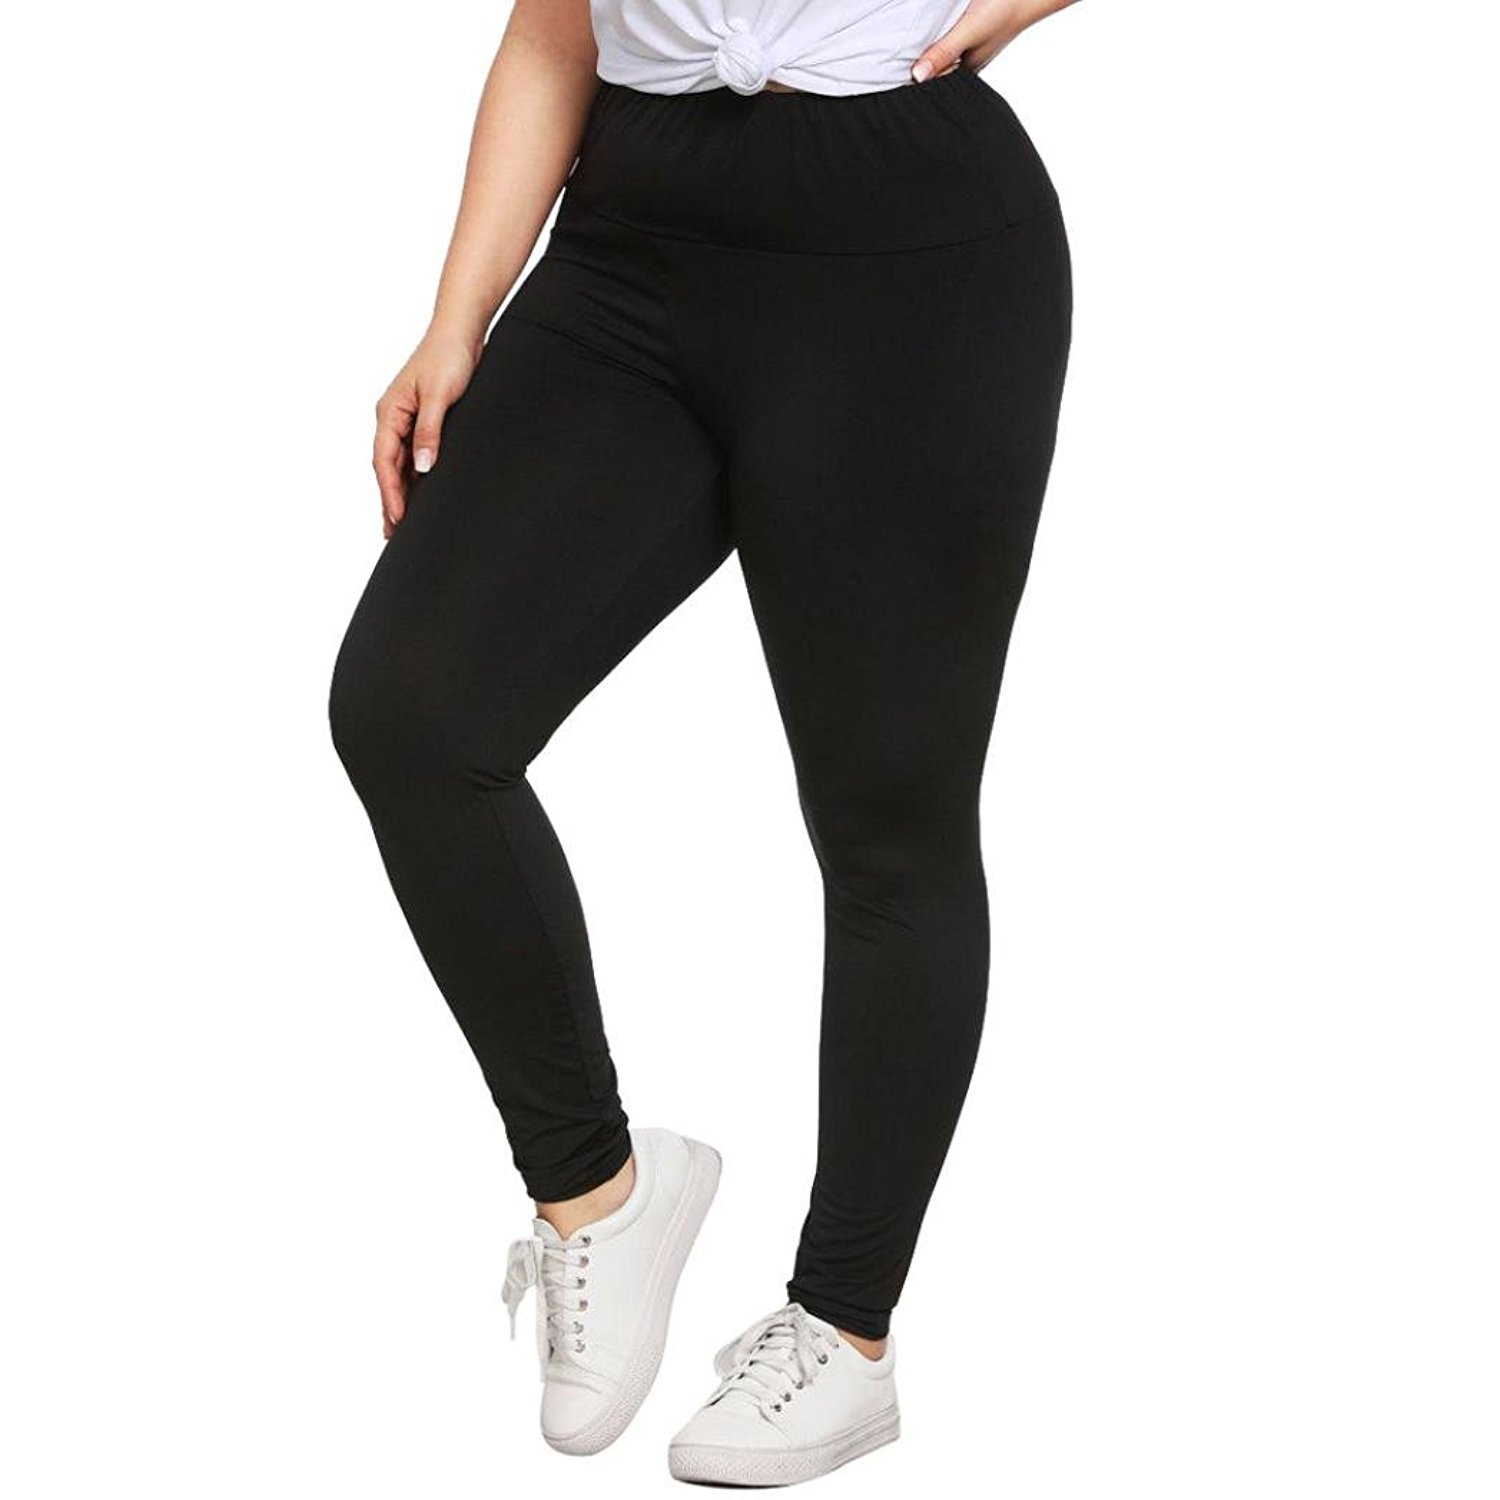 5a8e8051f2 Get Quotations · Yoga Leggings Plus Size,Women High Waist Running Leggings  Stretch Yoga Leggings Power Flex Pants